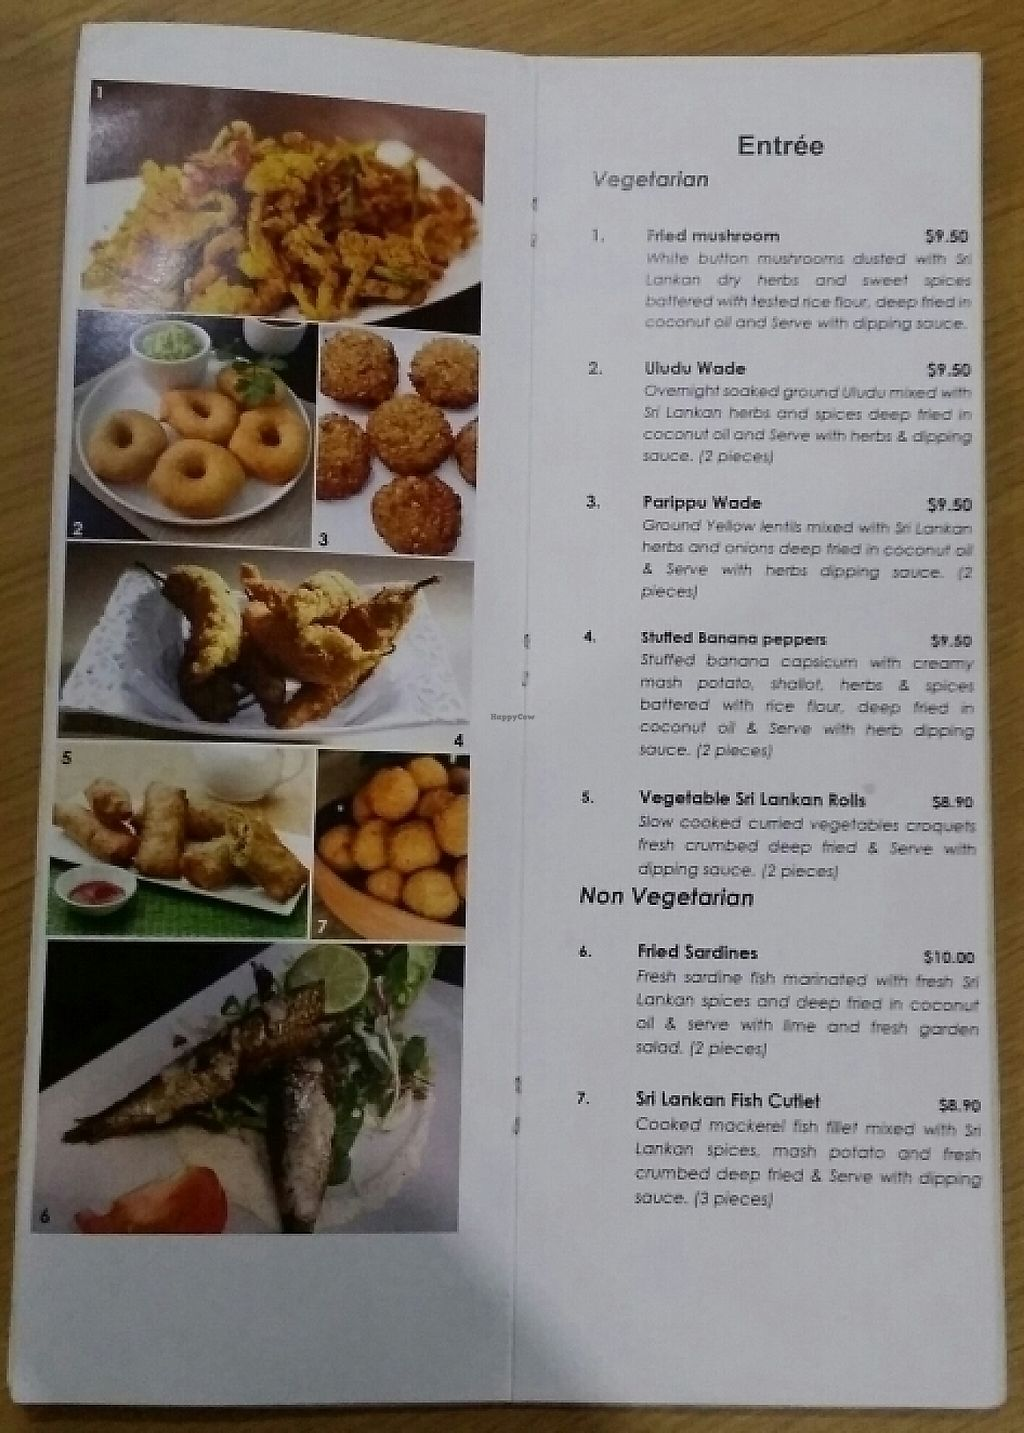 """Photo of CLOSED: Ceylon Dine in Style  by <a href=""""/members/profile/Mike%20Munsie"""">Mike Munsie</a> <br/>vego menu 2 <br/> May 11, 2017  - <a href='/contact/abuse/image/90467/257775'>Report</a>"""